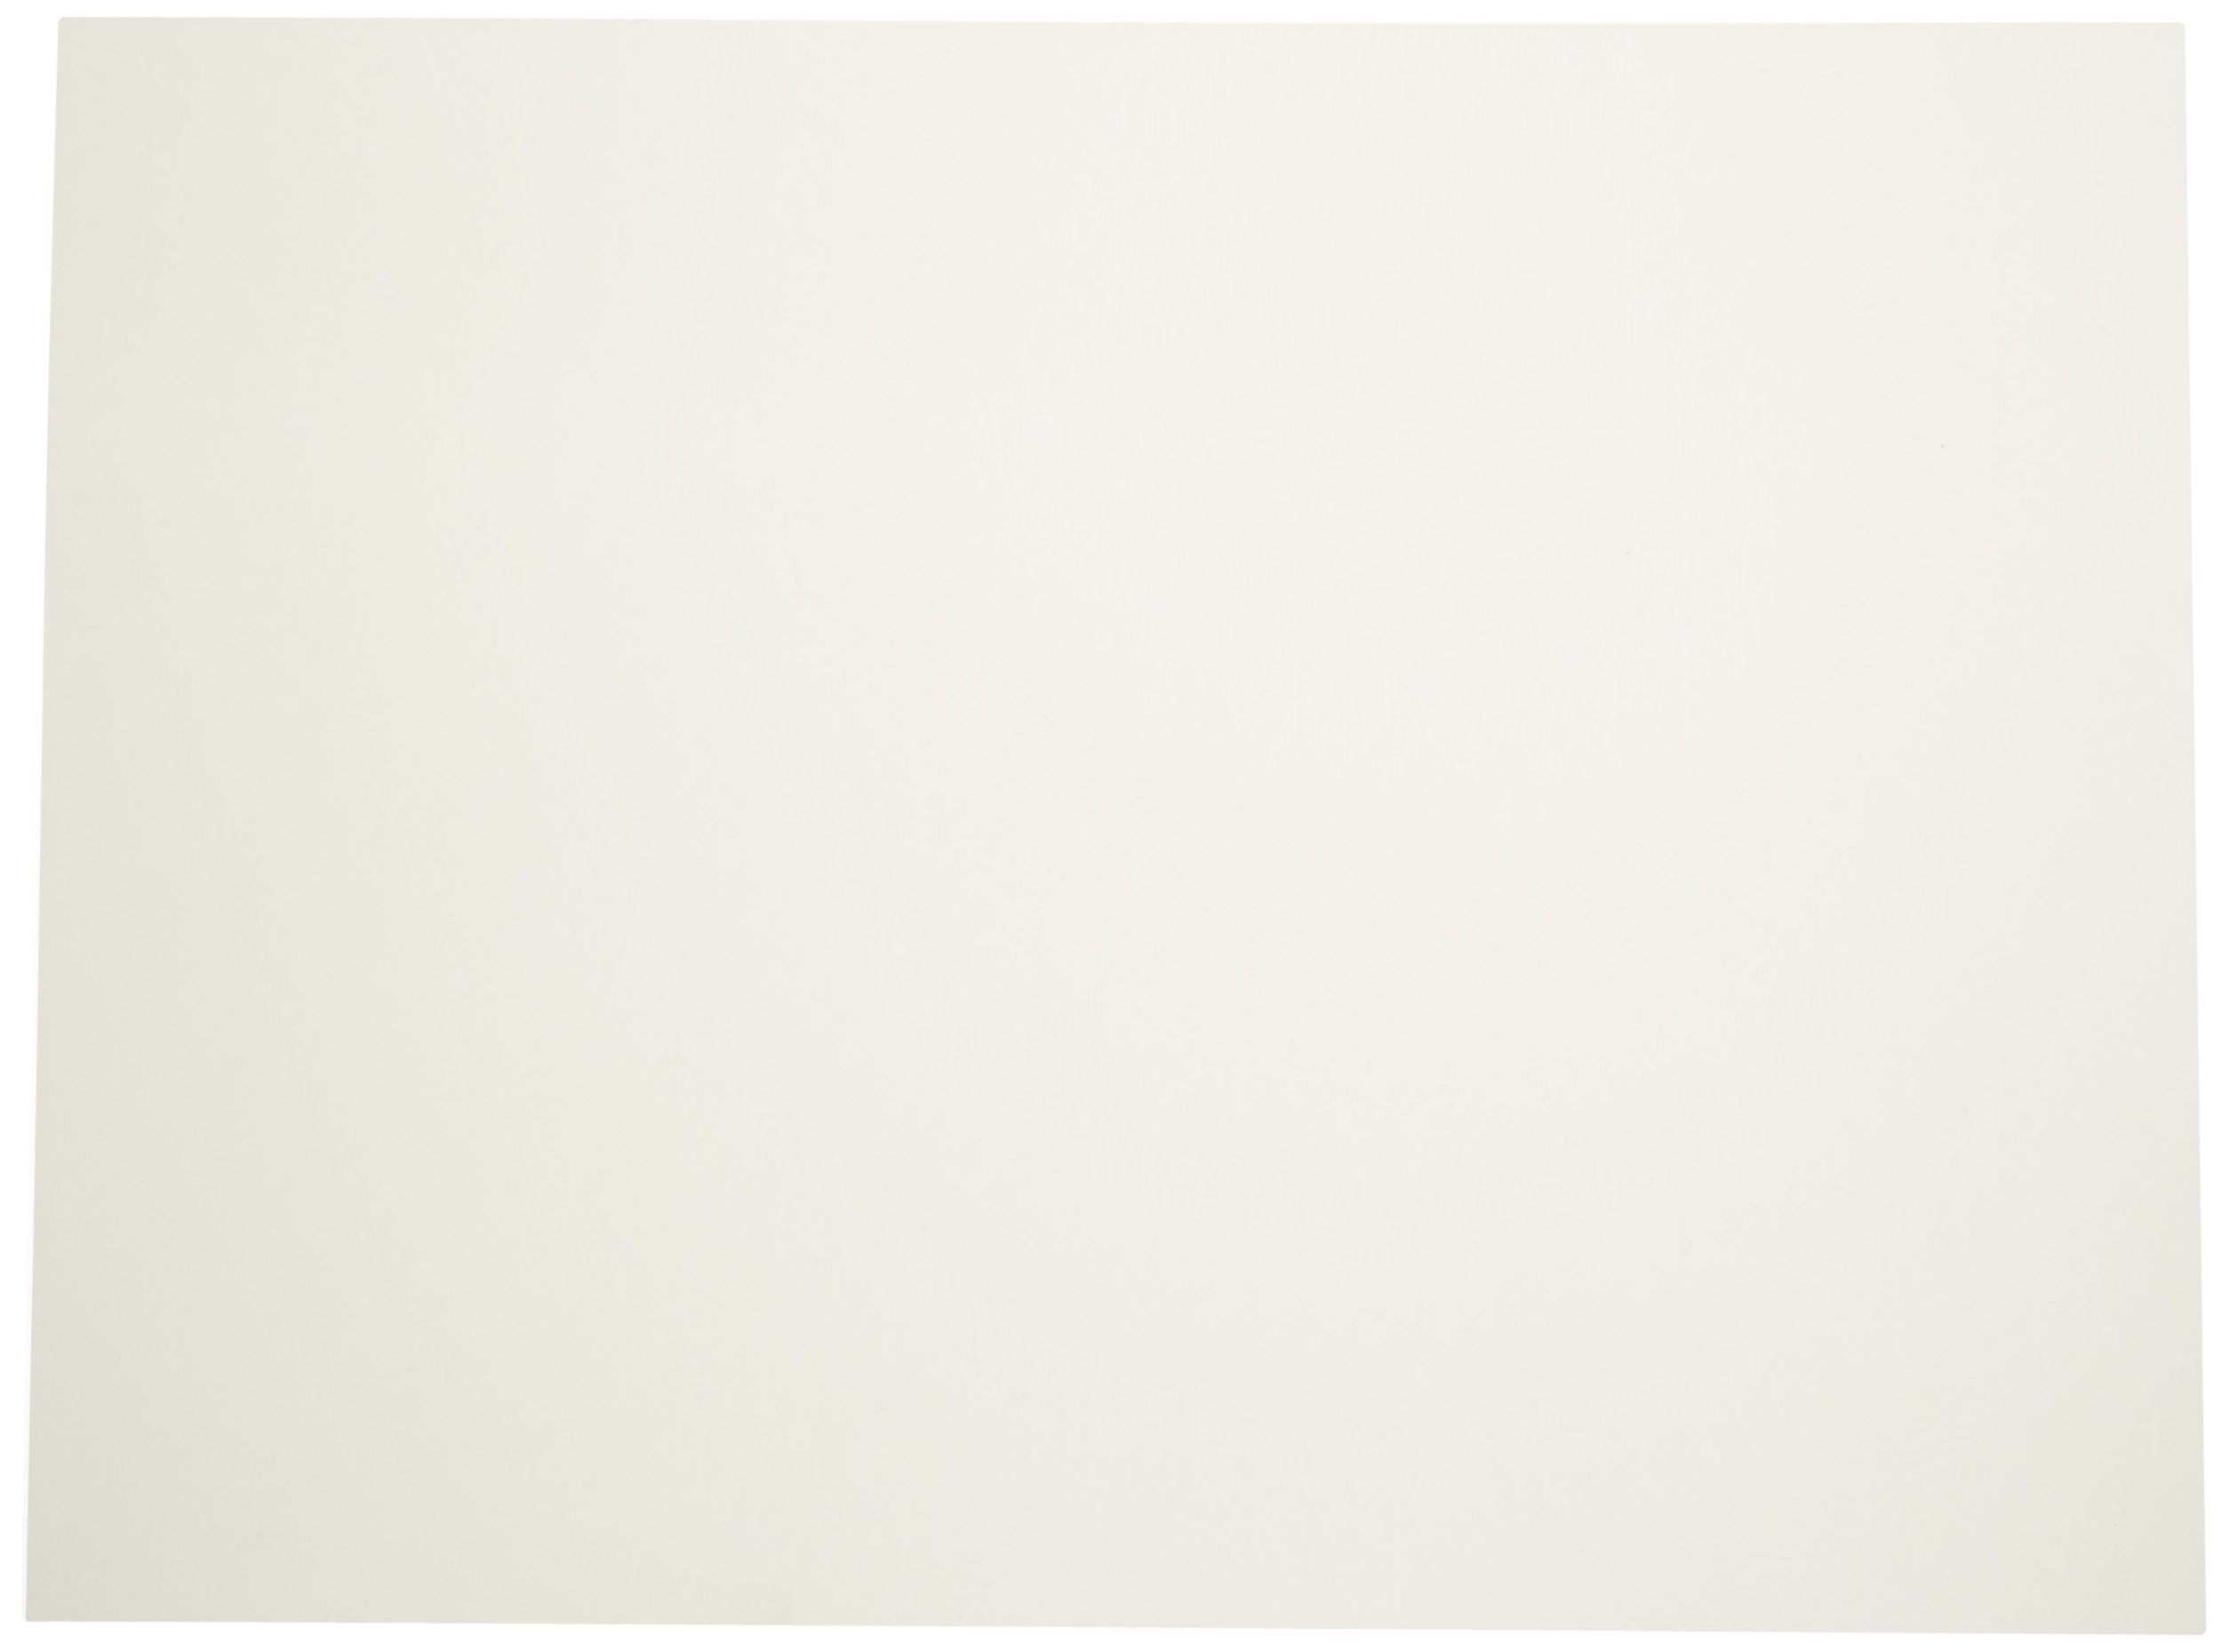 Sax Watercolor Paper, 140 lb, 18 x 24 Inches, Natural White, 100 Sheets